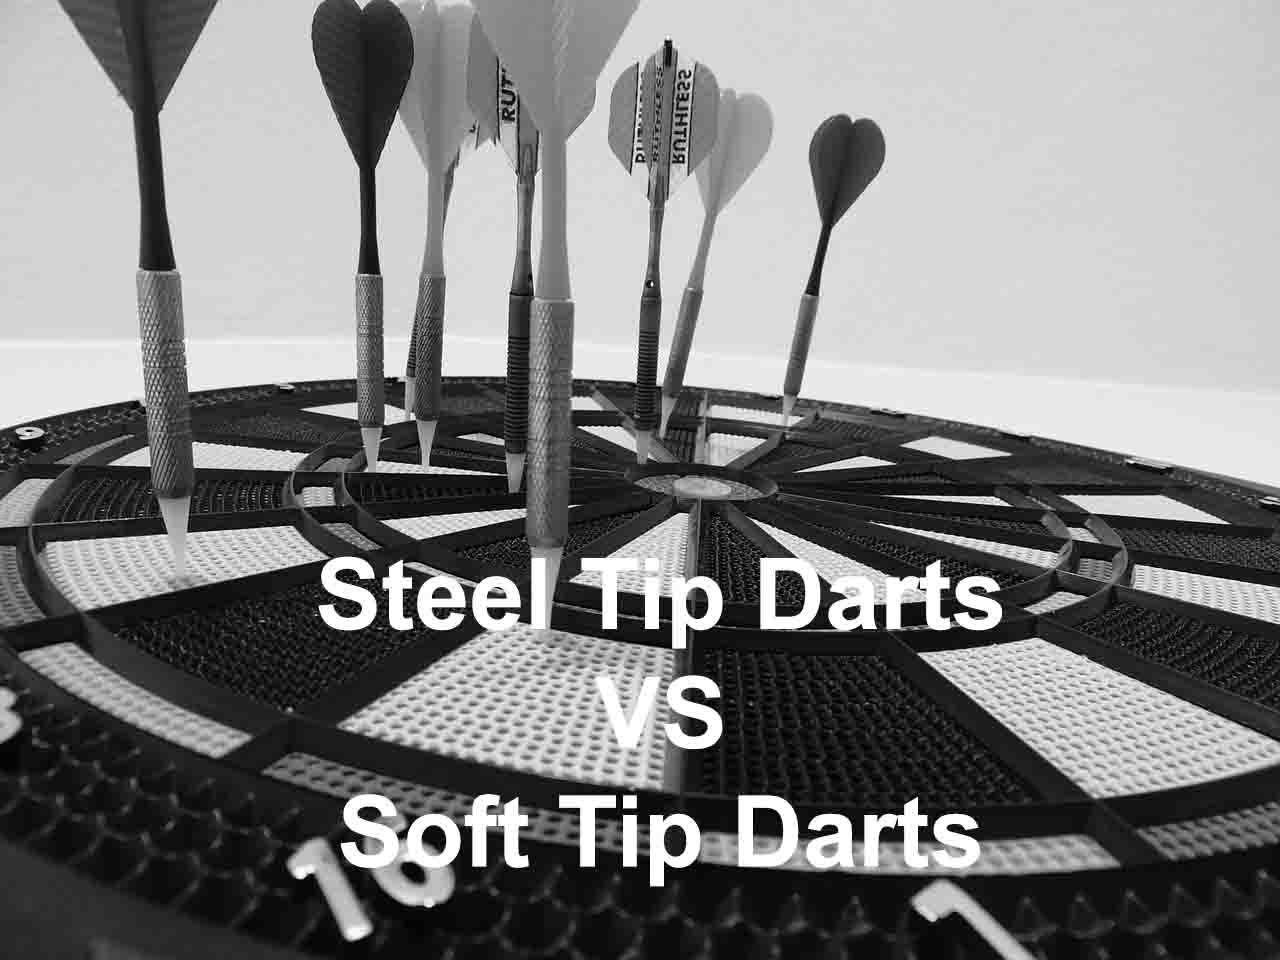 Types of Darts